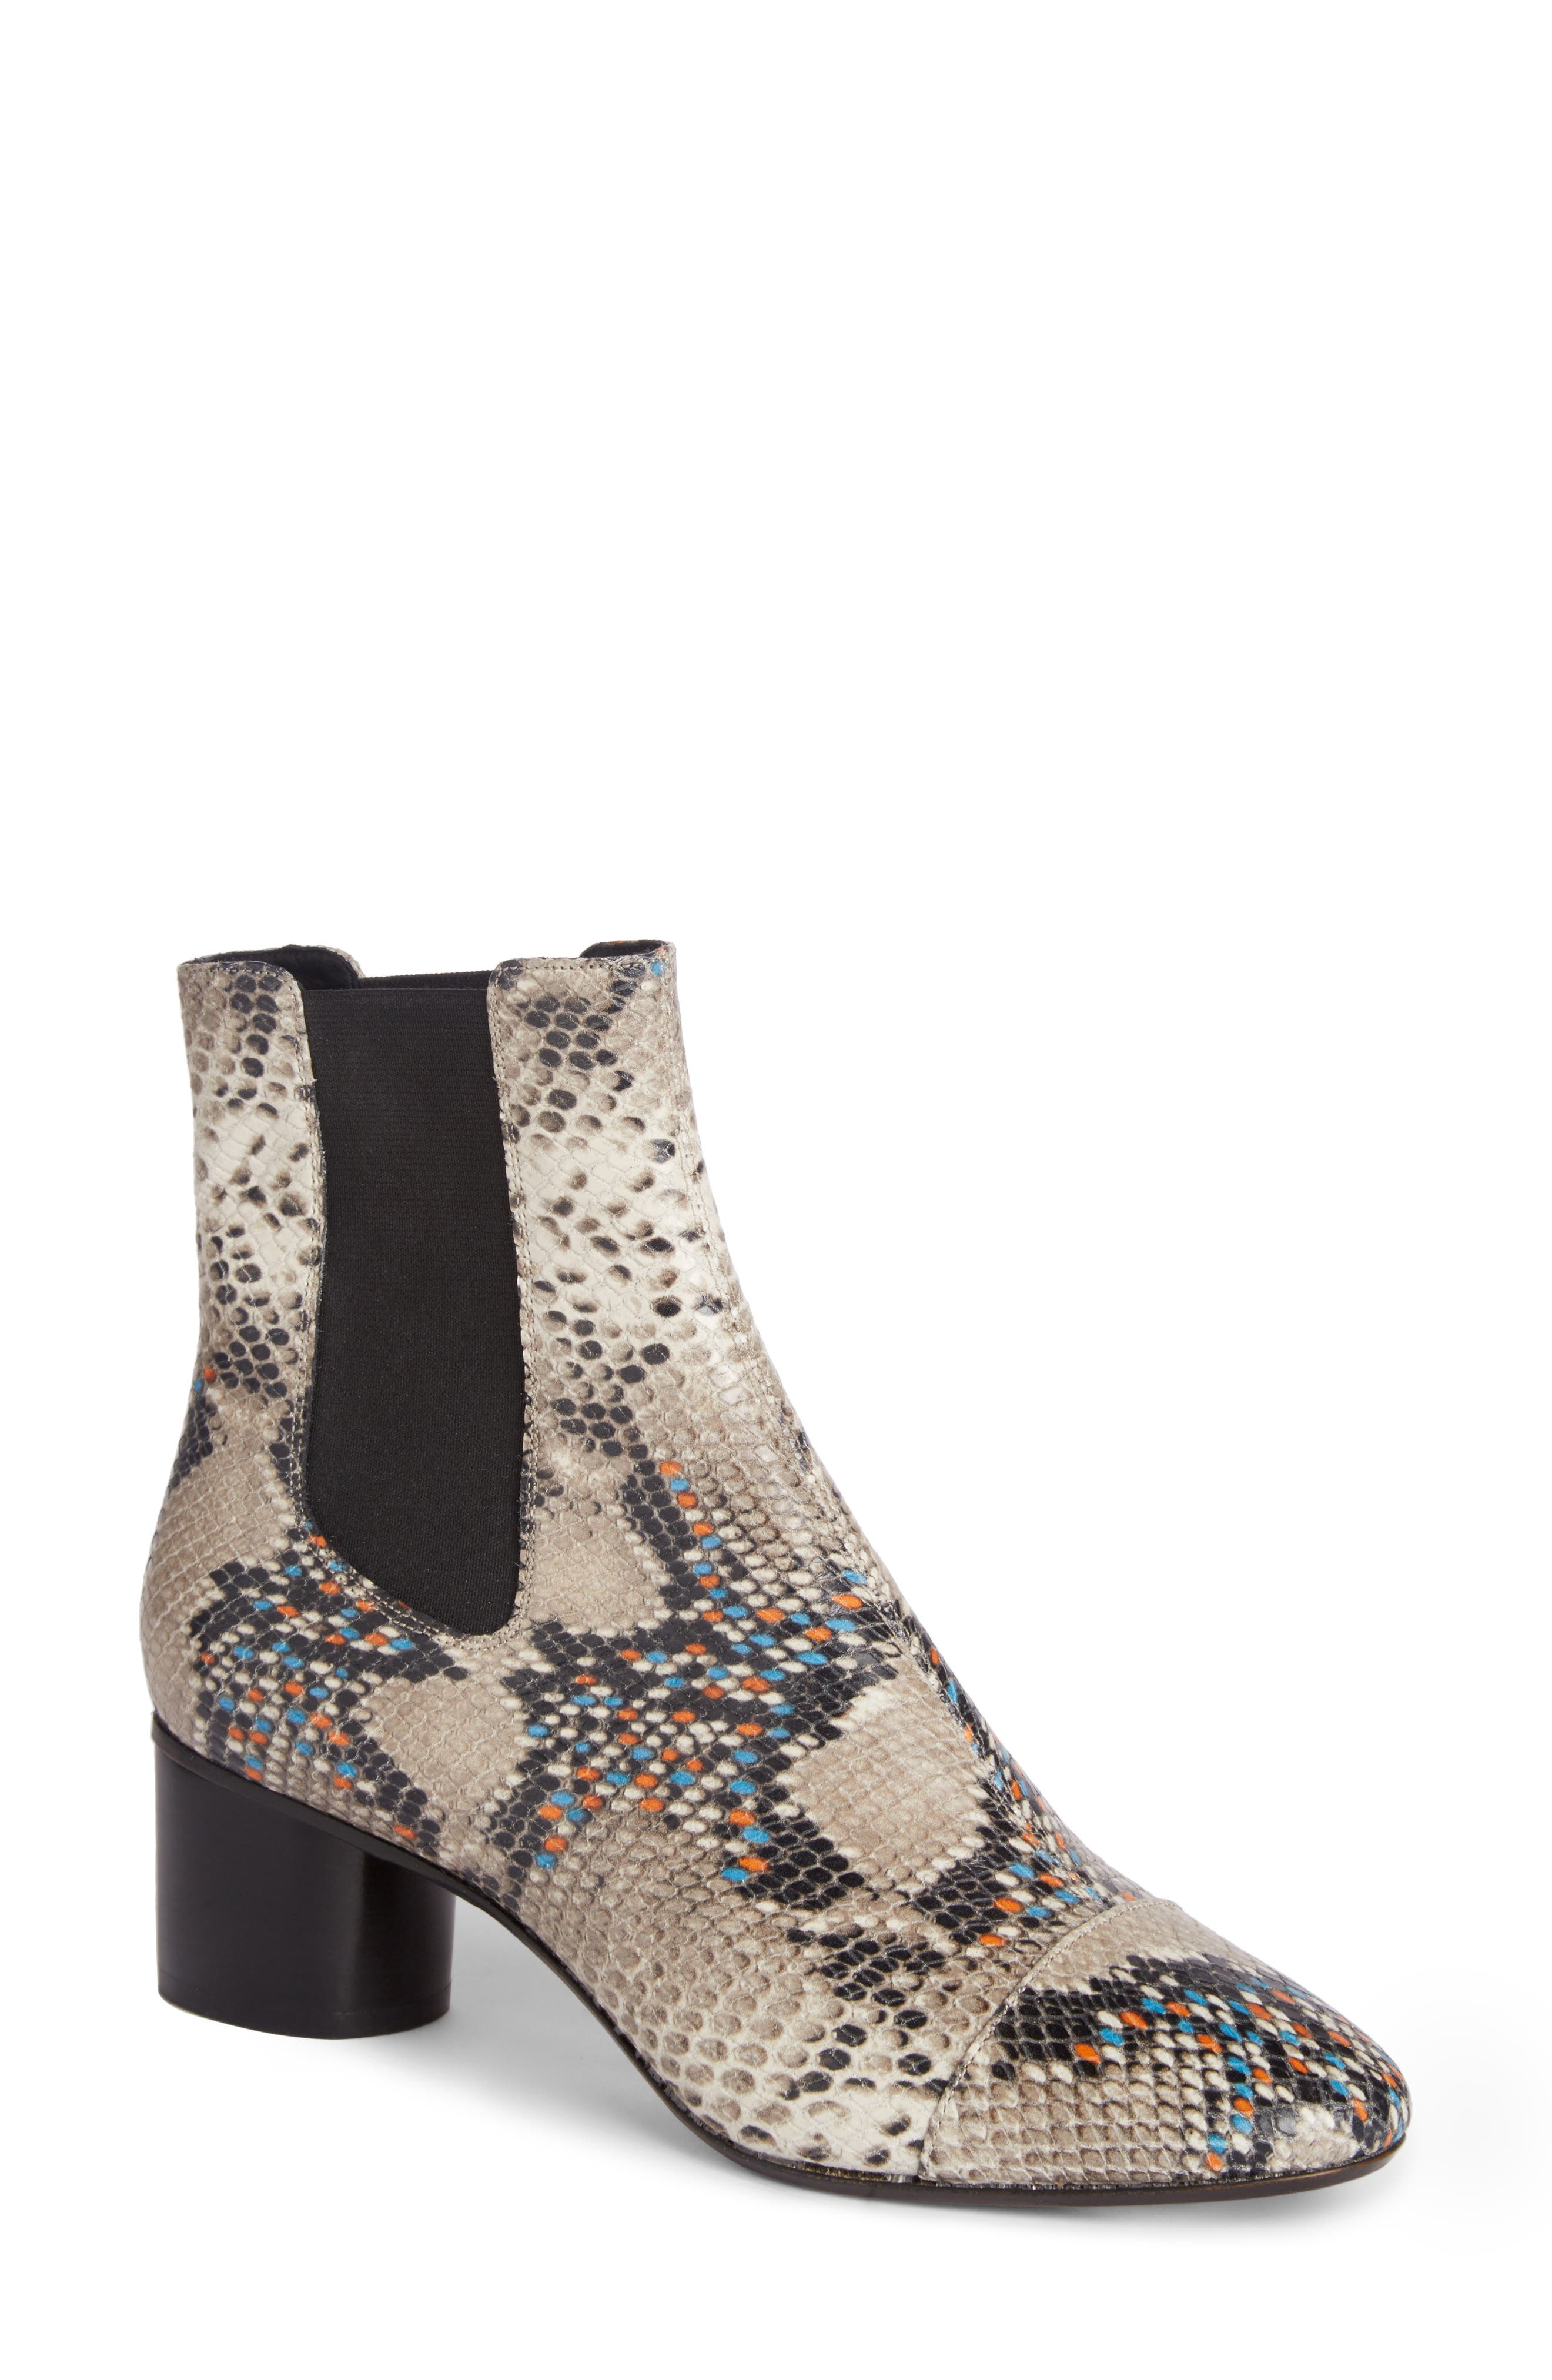 Danelya Snakeskin-Embossed Chelsea Boots Isabel Marant Limit Discount Cheap Get To Buy Many Styles Genuine Sale Online hUgbPqFT0